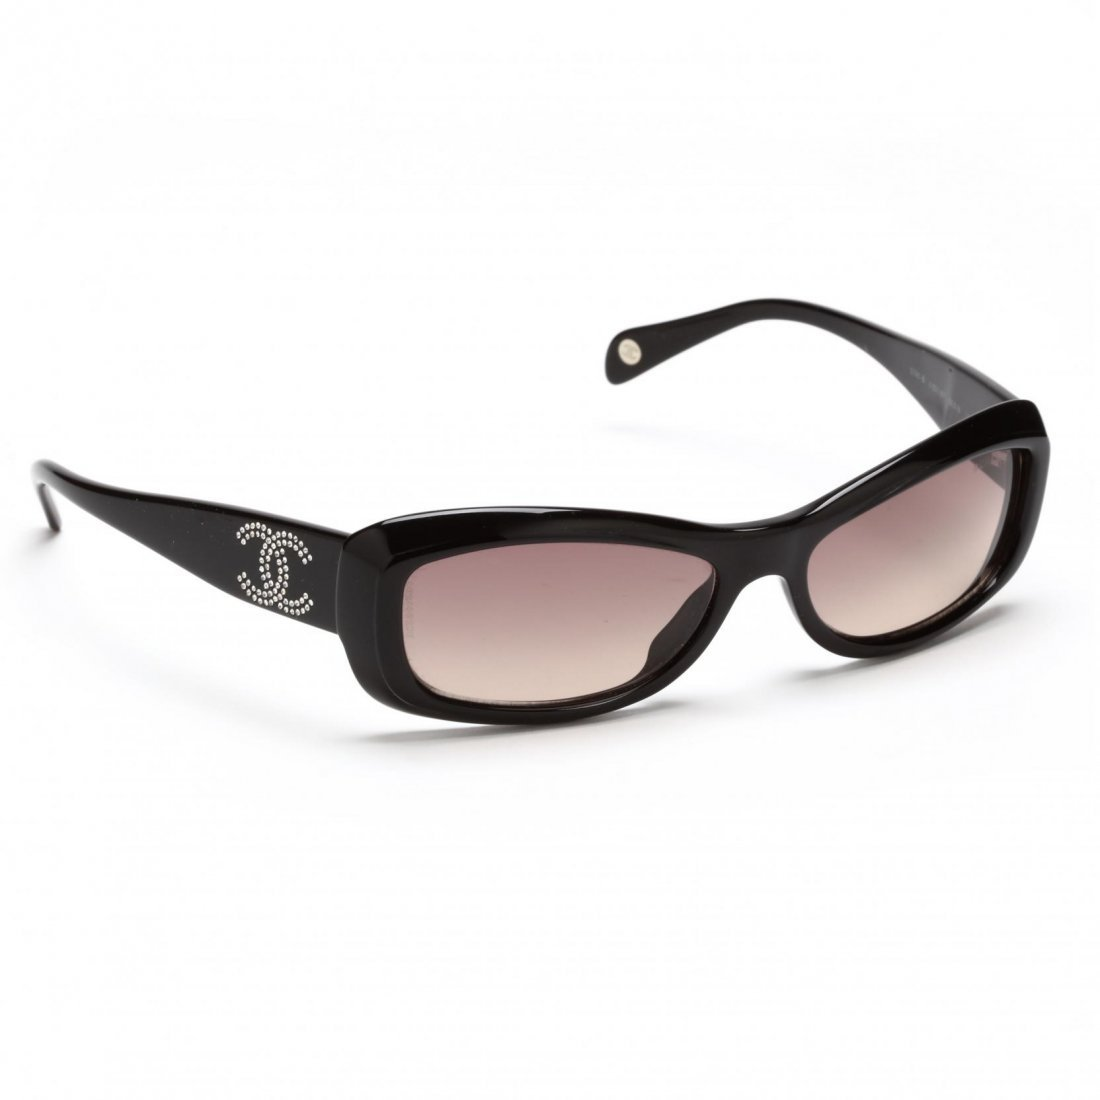 Two Pair of Logo Sunglasses, Chanel - 4